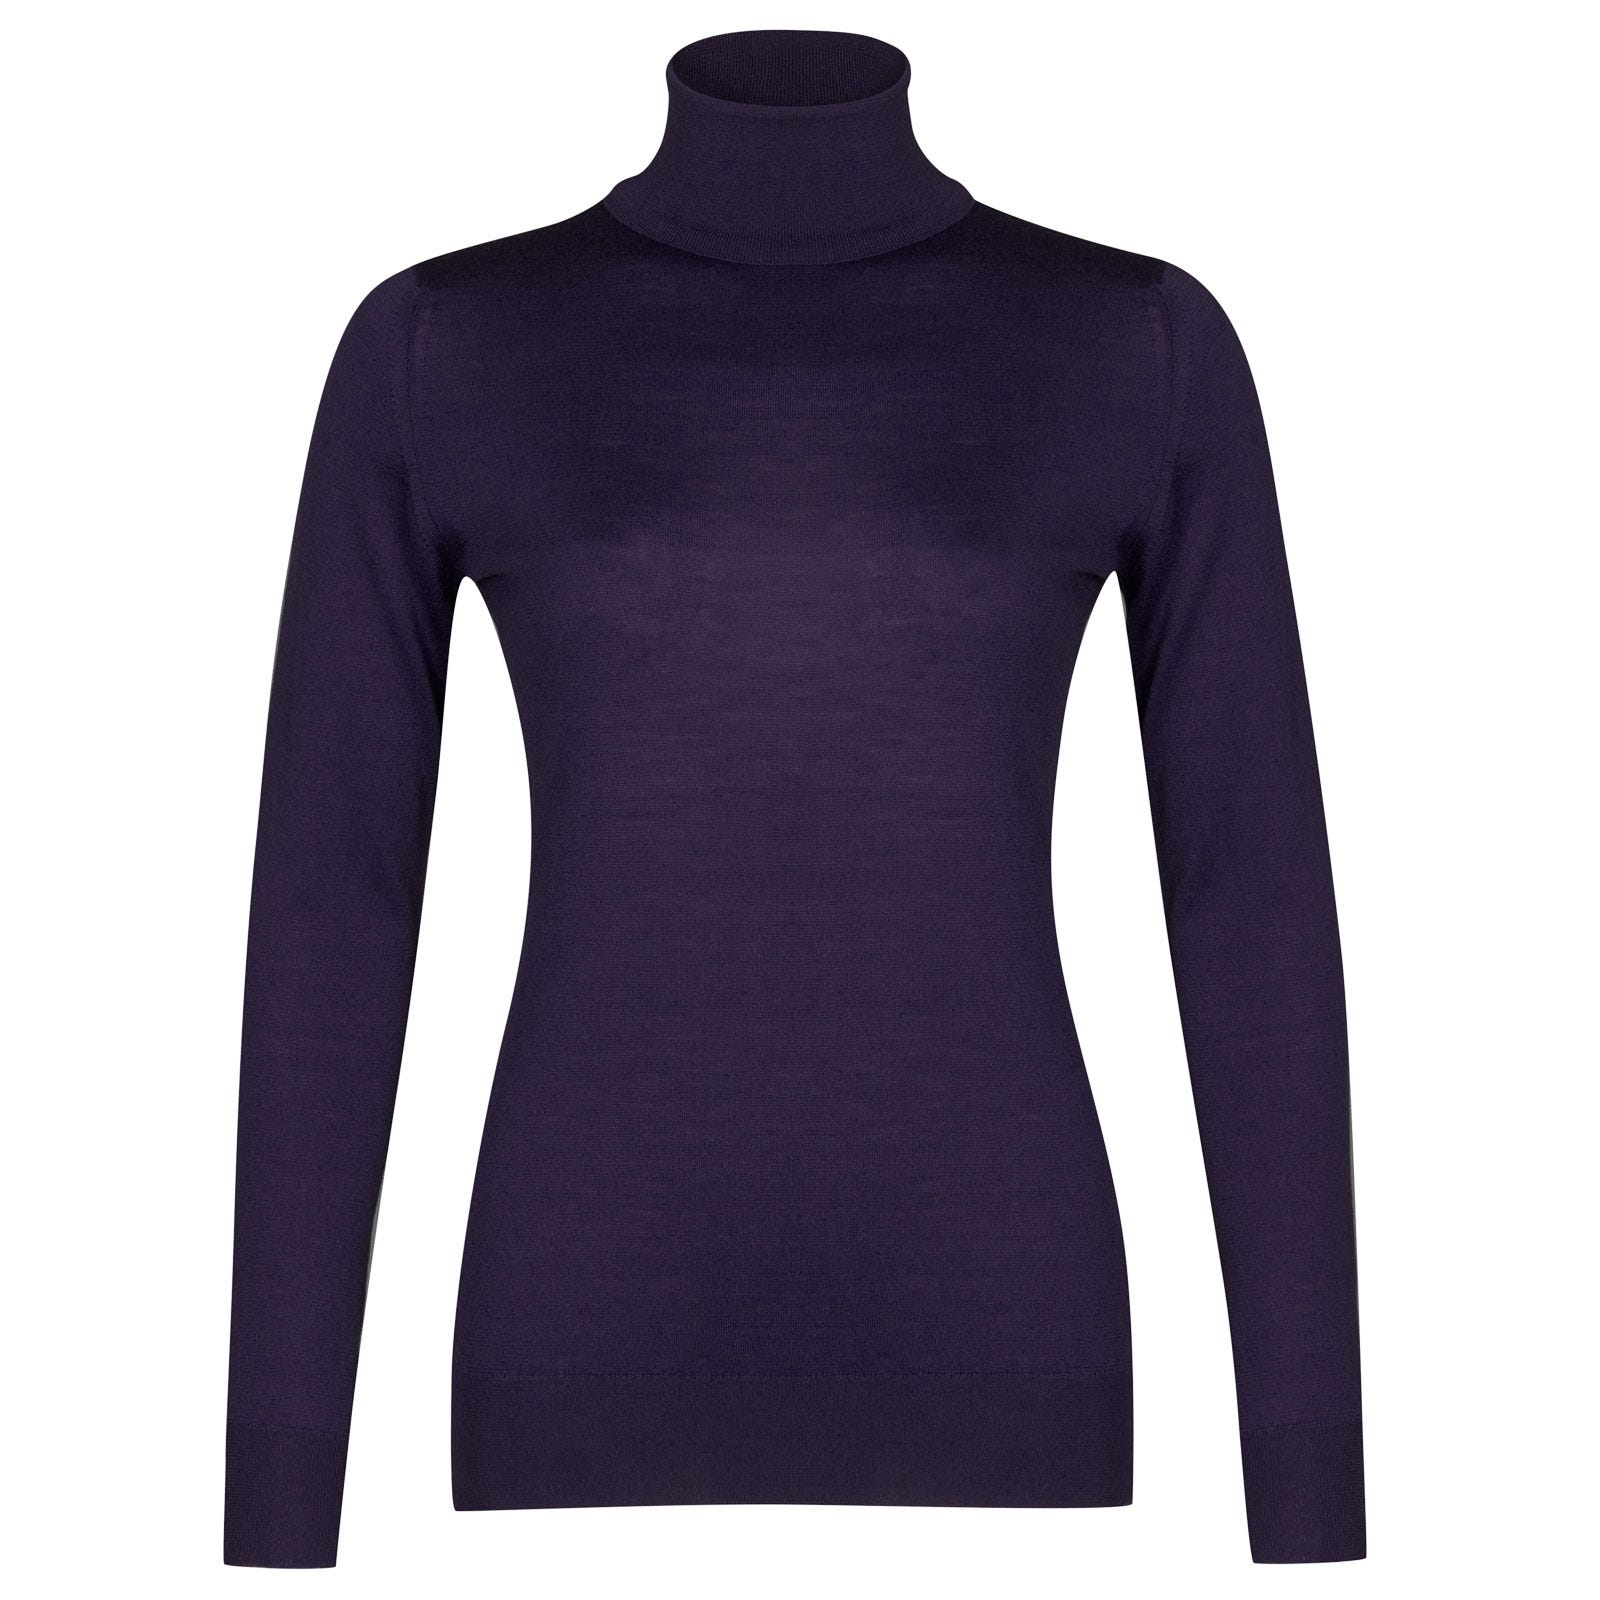 John Smedley Catkin Merino Wool Sweater in Elderberry Purple-S